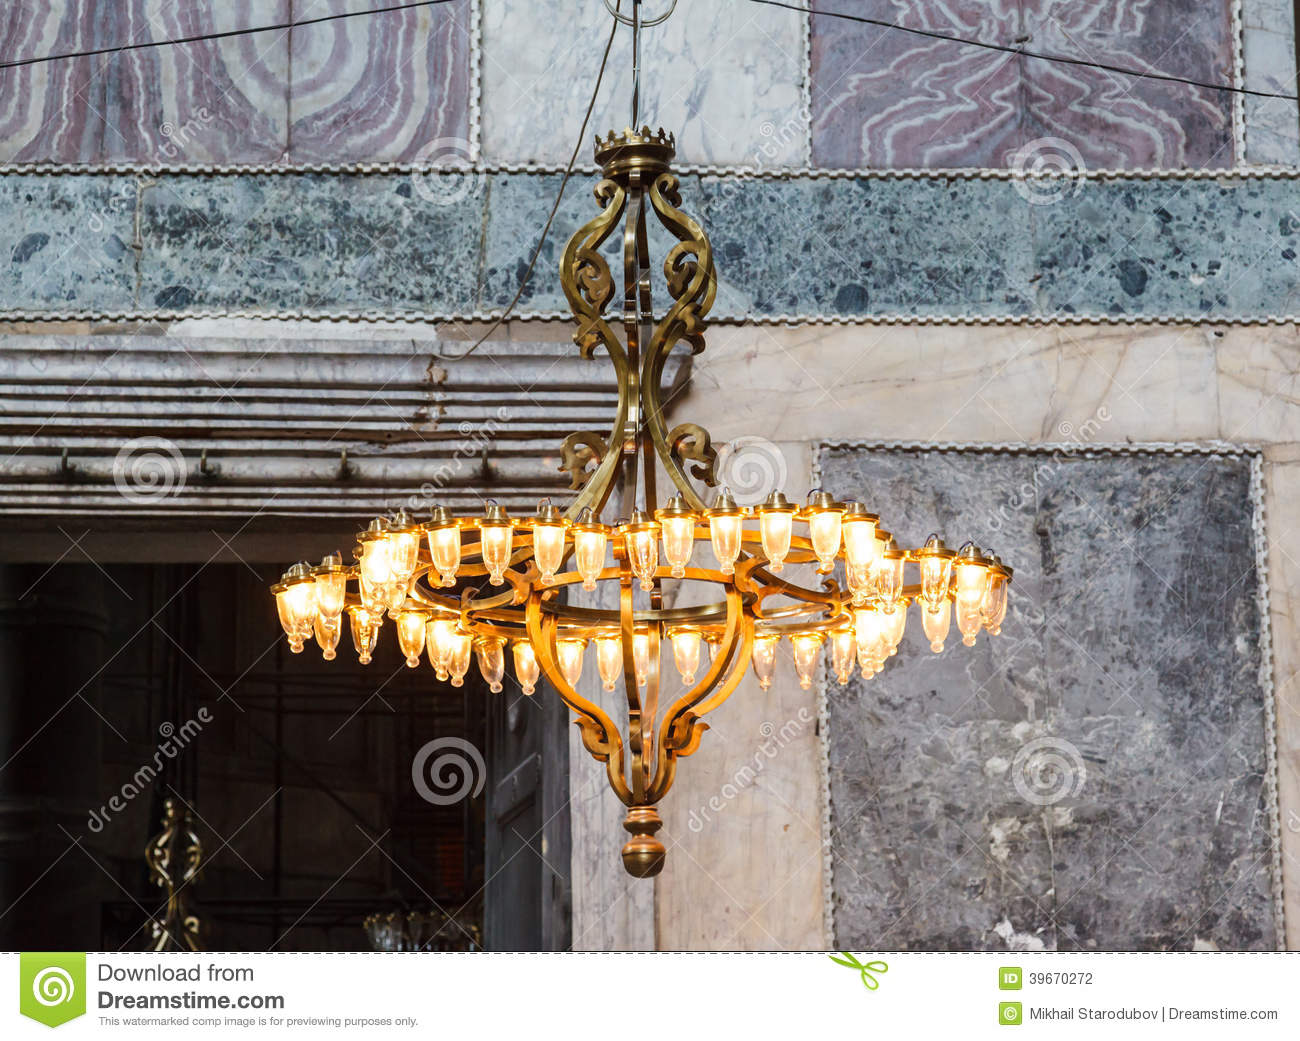 Old chandelier under the dome of hagia sophia stock photo image of download old chandelier under the dome of hagia sophia stock photo image of decorated aloadofball Images